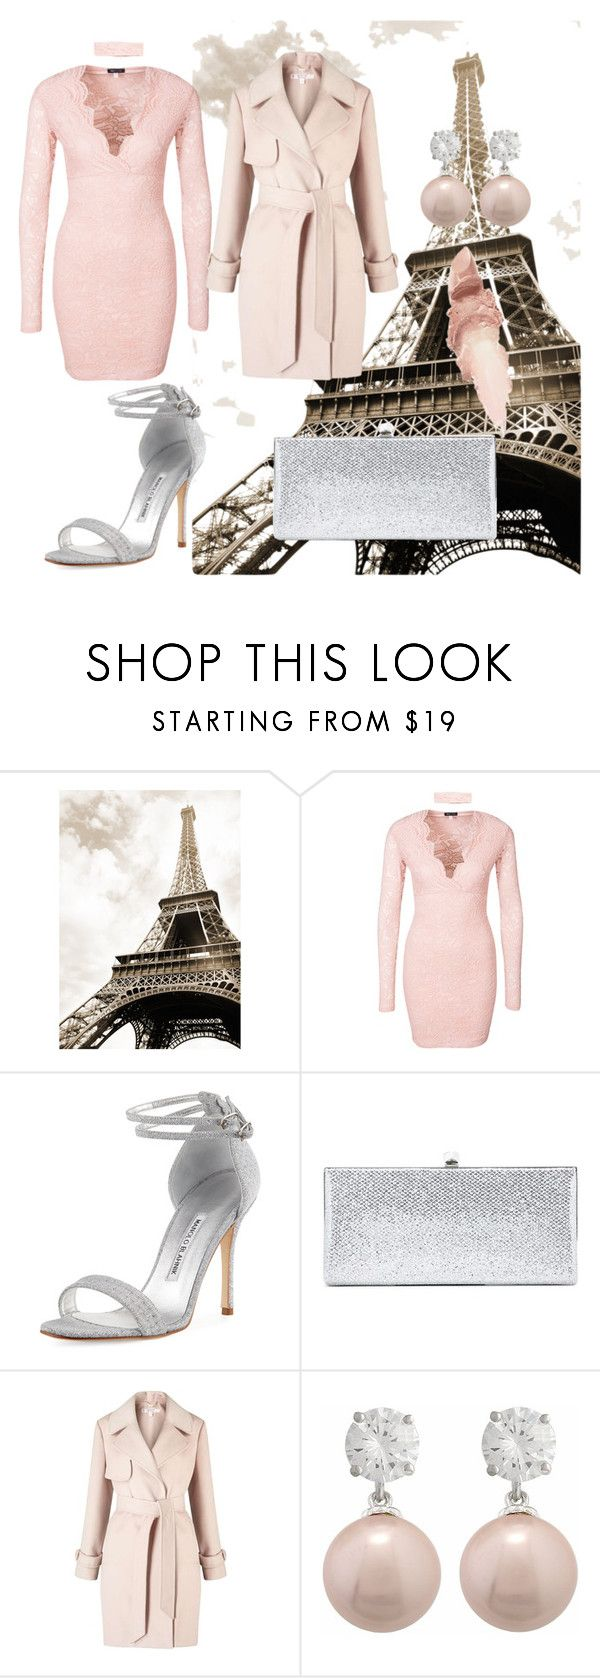 """""""Paris"""" by amila677 ❤ liked on Polyvore featuring Manolo Blahnik, Jimmy Choo, Miss Selfridge, Jankuo and Maybelline"""